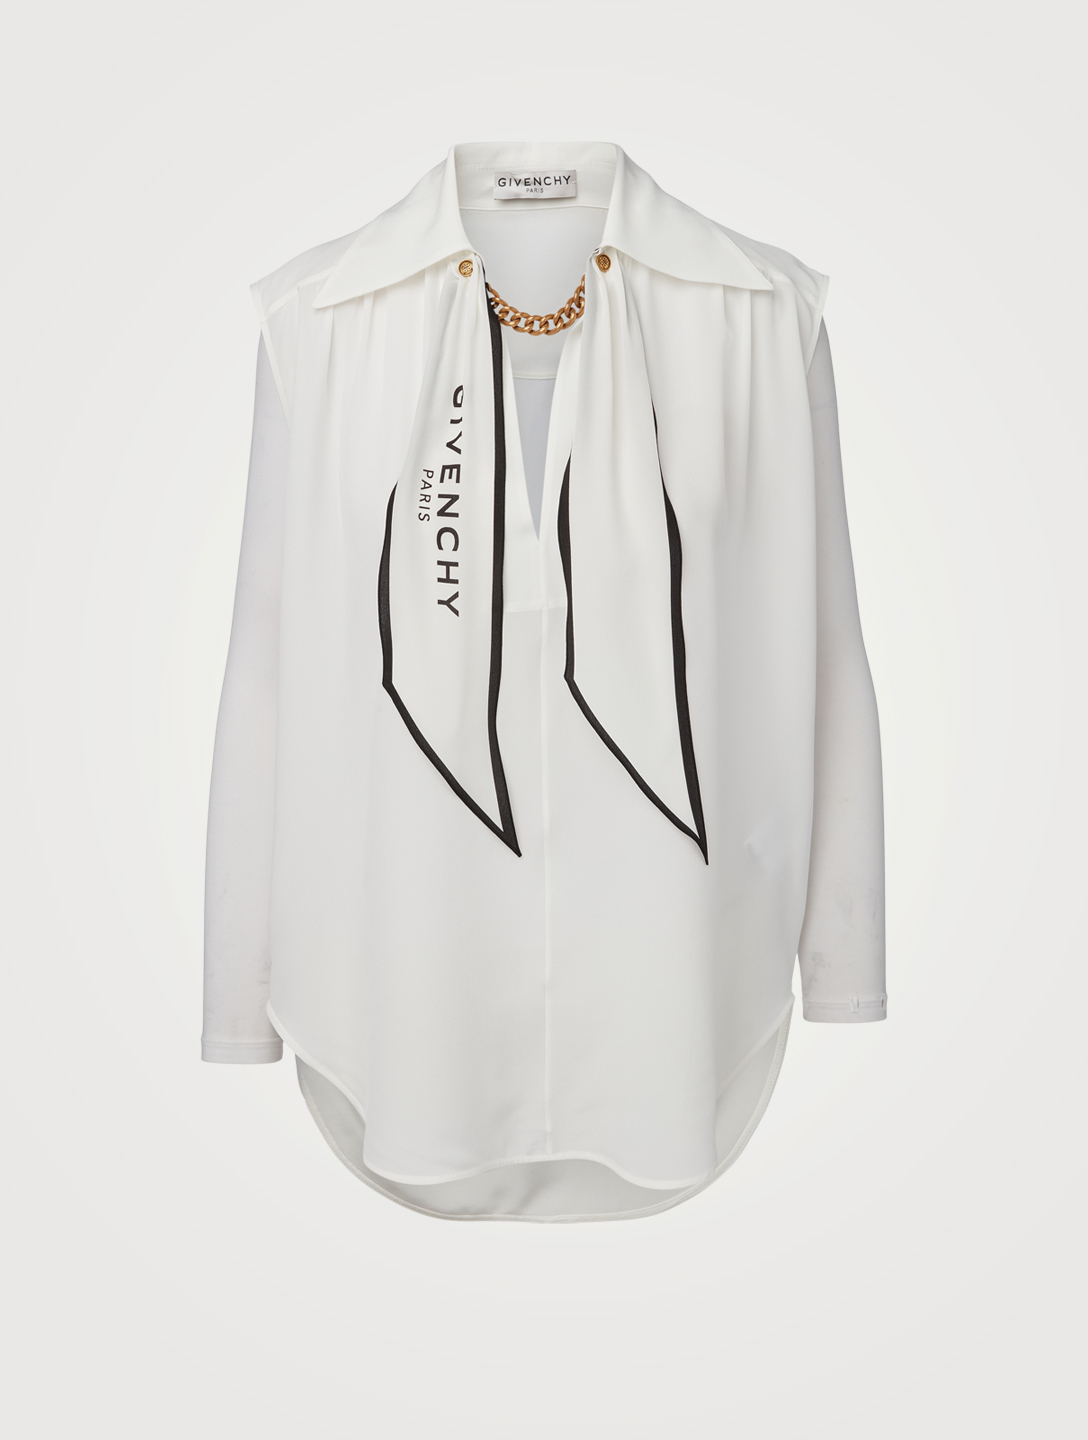 GIVENCHY Silk Crepe de Chine Blouse With Chain & Logo Scarf Women's White